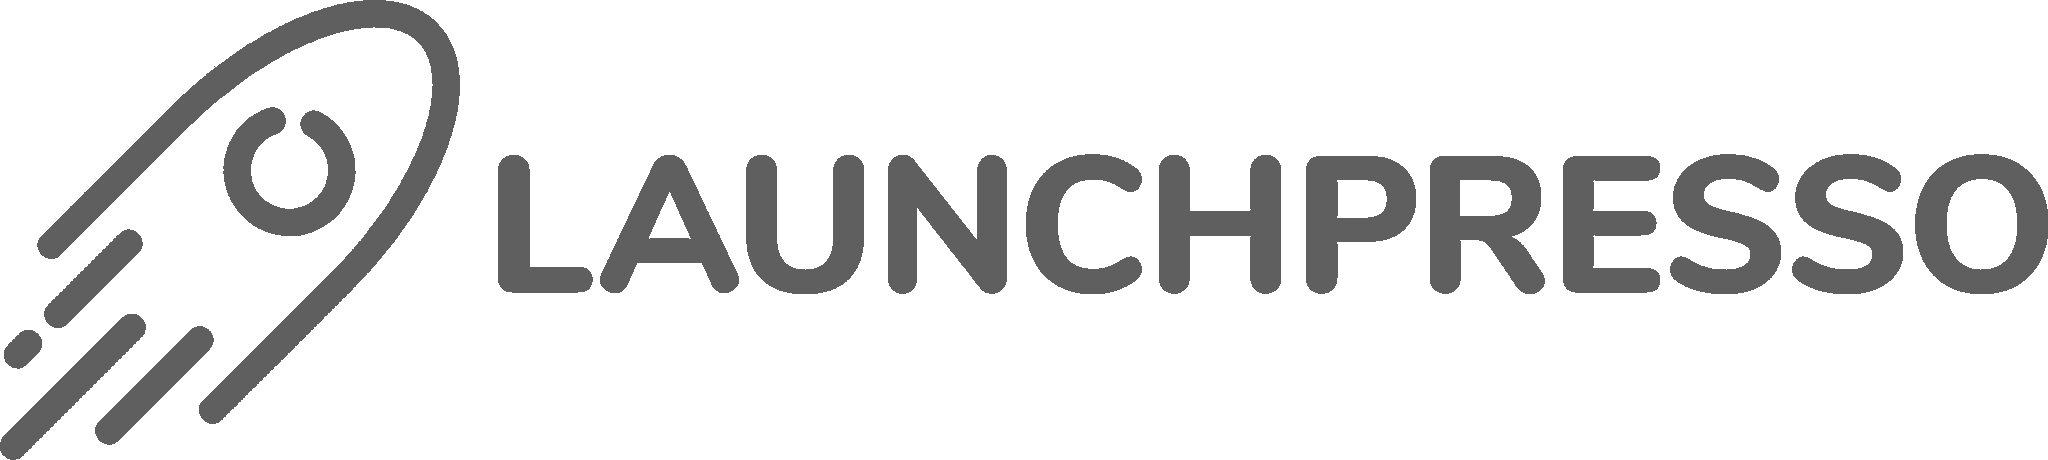 Launchpresso Digital Marketing